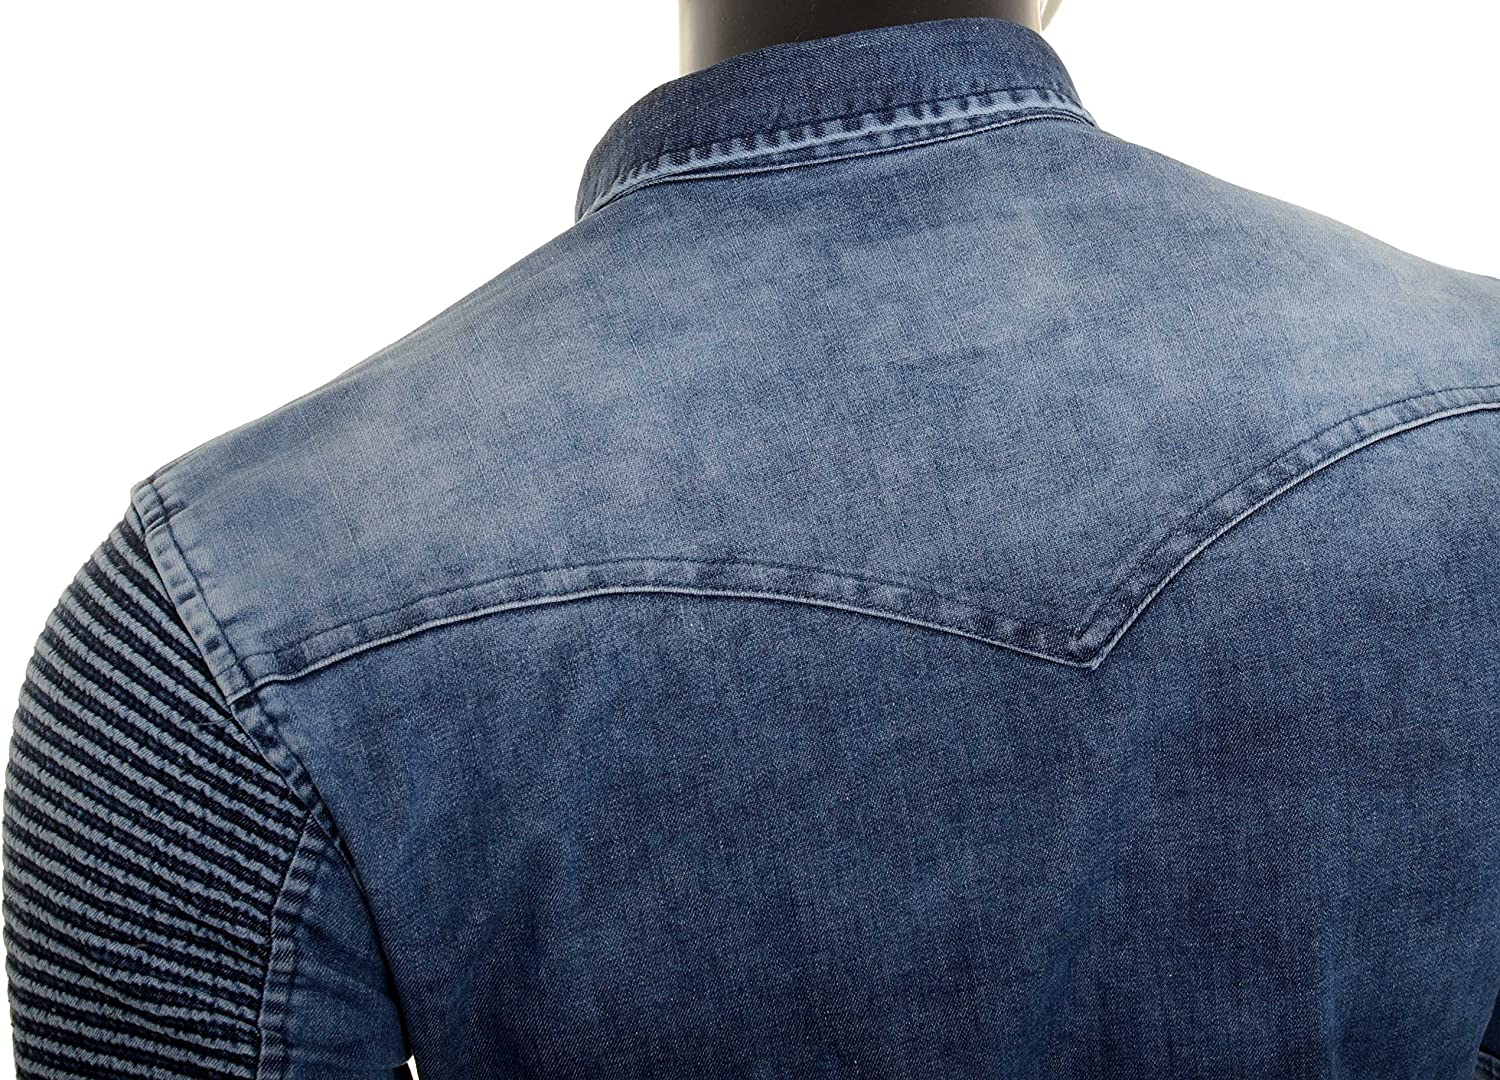 D/&R Fashion Men Denim Shirt Washed Out Ribbed Stretchy Top